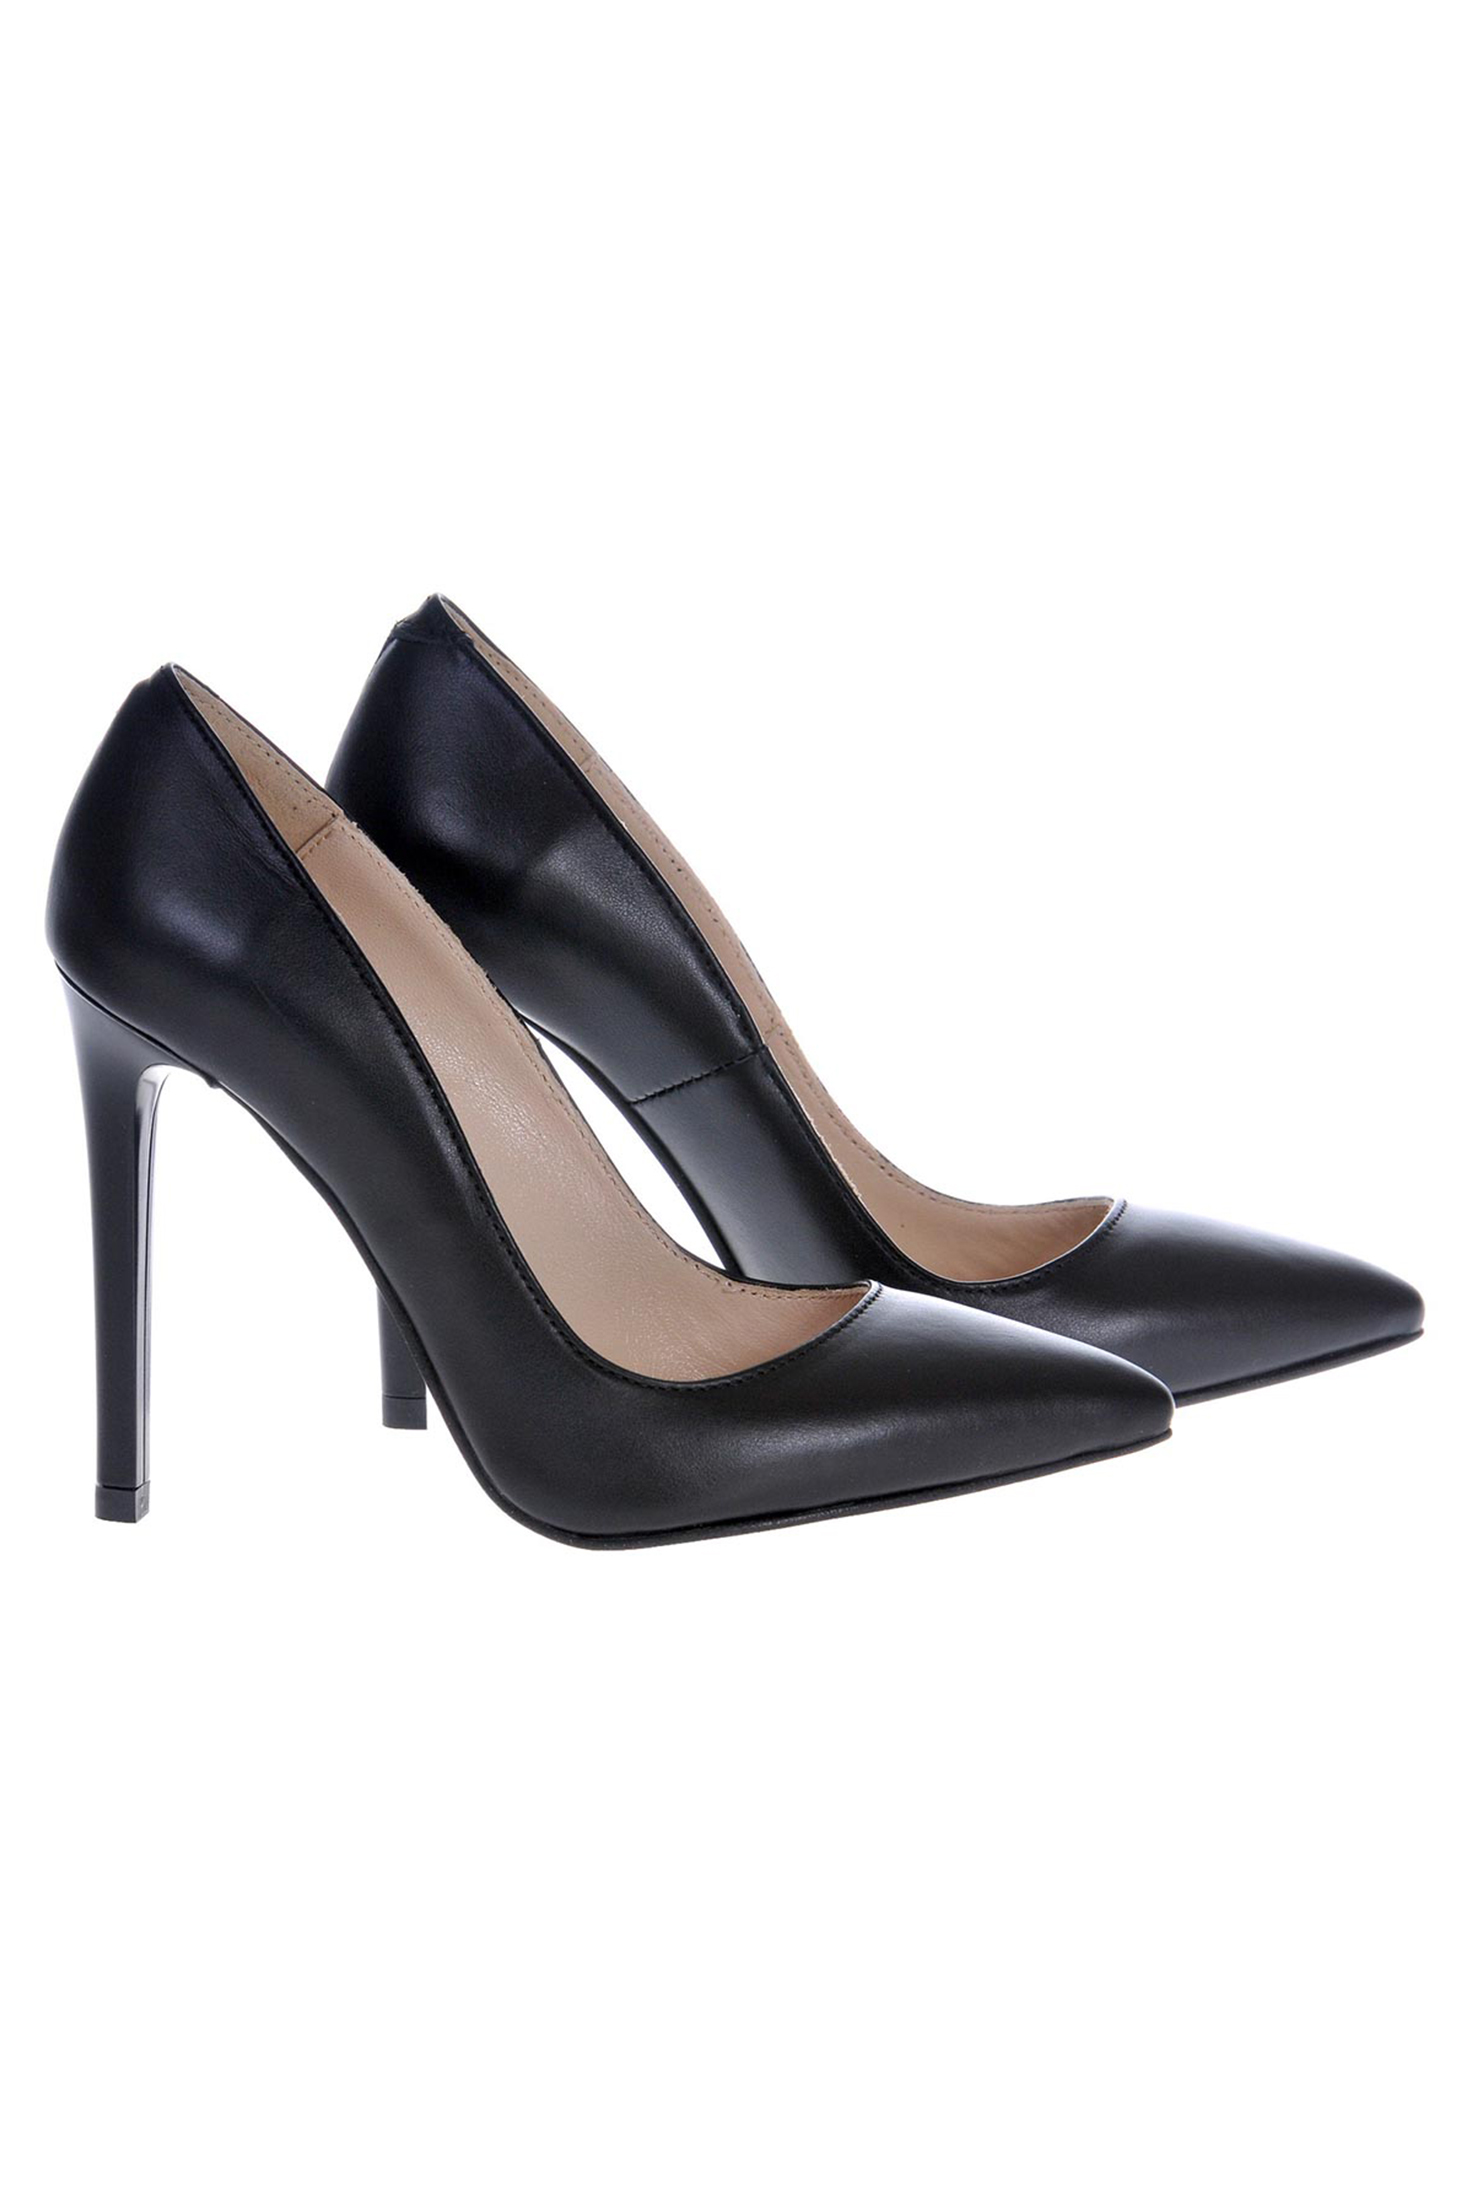 310f0e457c5 Black shoes natural leather stiletto with high heels slightly pointed toe  tip